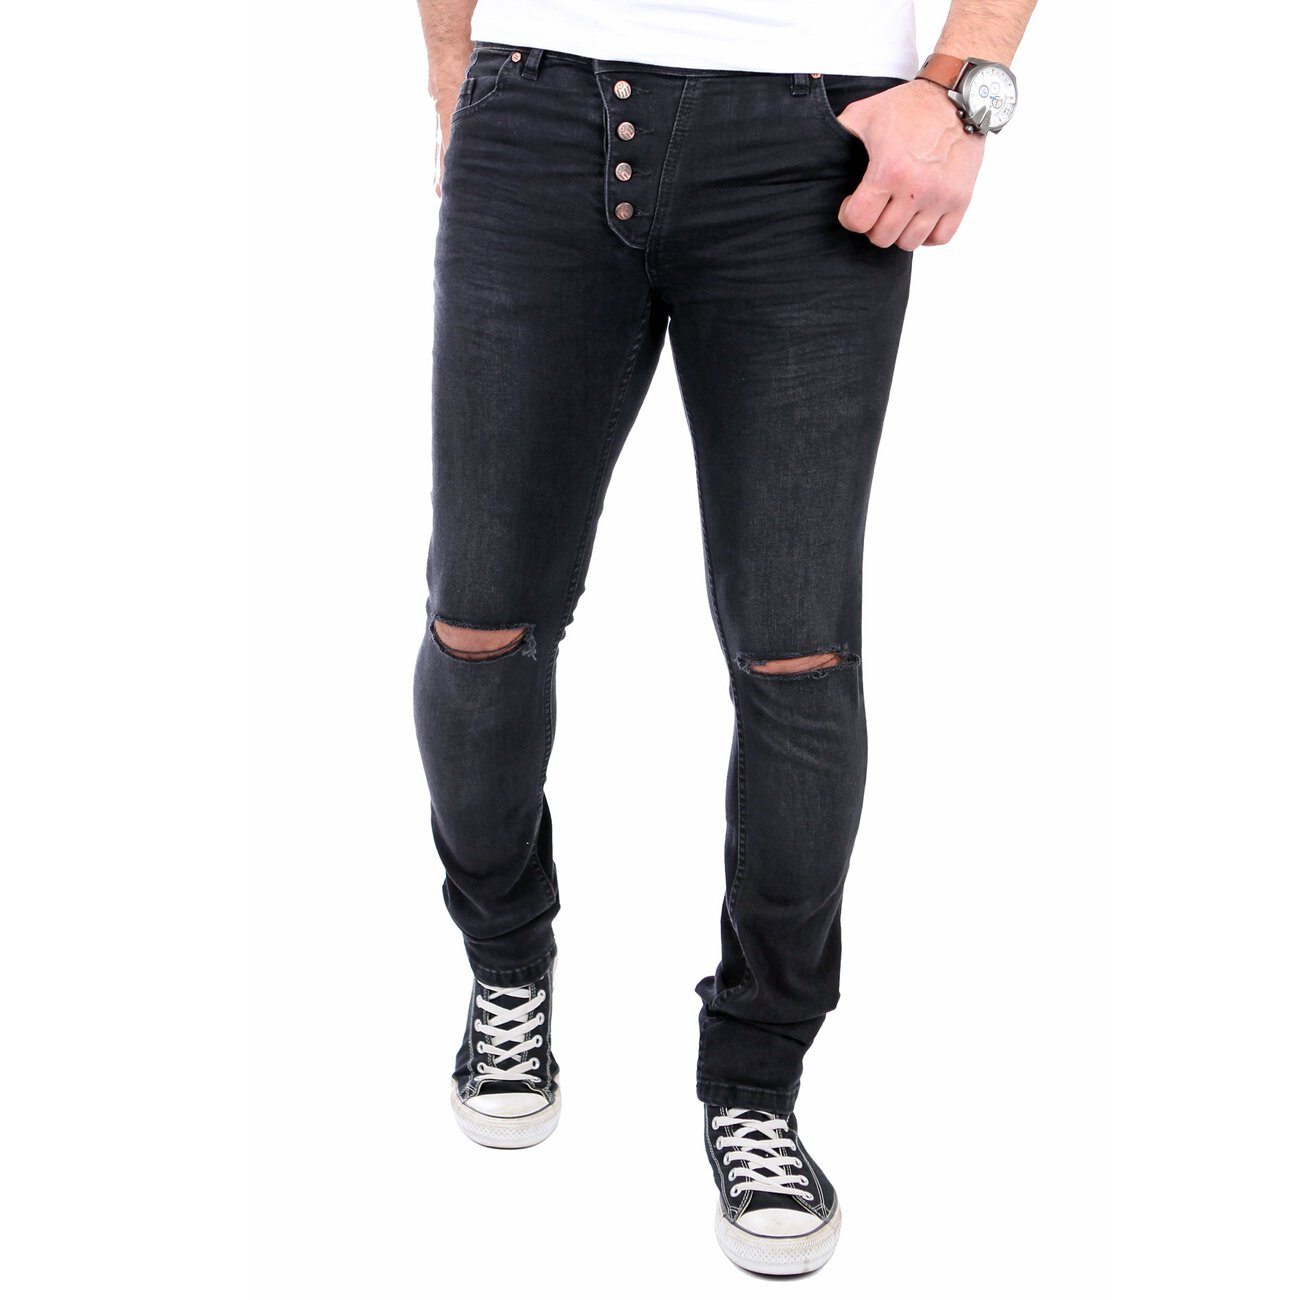 reslad jeans herren knie zerrissen slim fit denim destroyed jeans hose. Black Bedroom Furniture Sets. Home Design Ideas